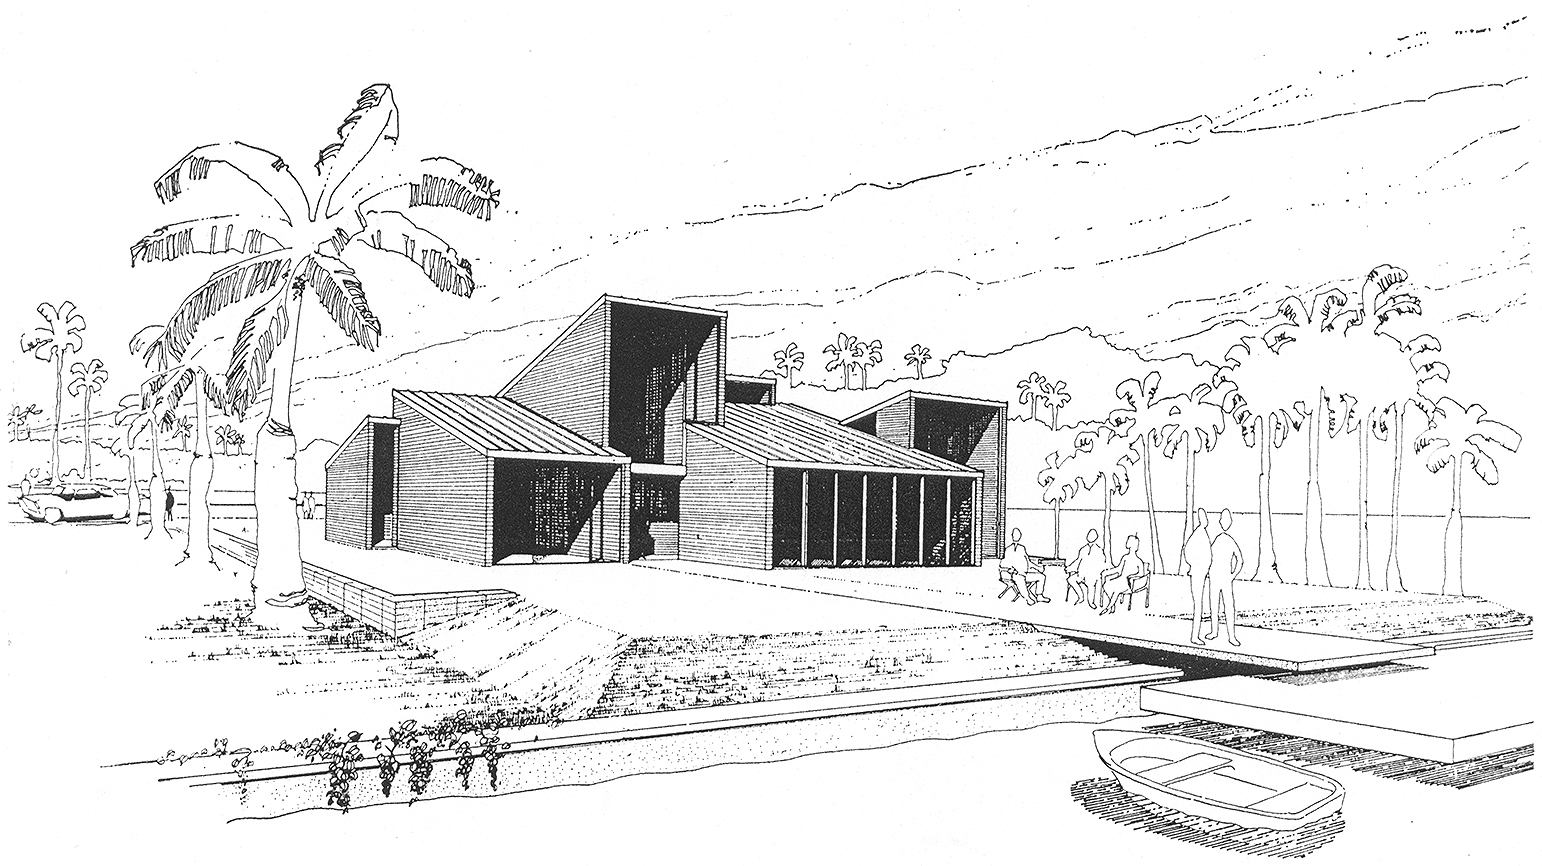 Daisley residence, Ocean Ridge (Inlet Cay), Florida. Perspective Rendering of Building Exterior by Bryant L. Conant.